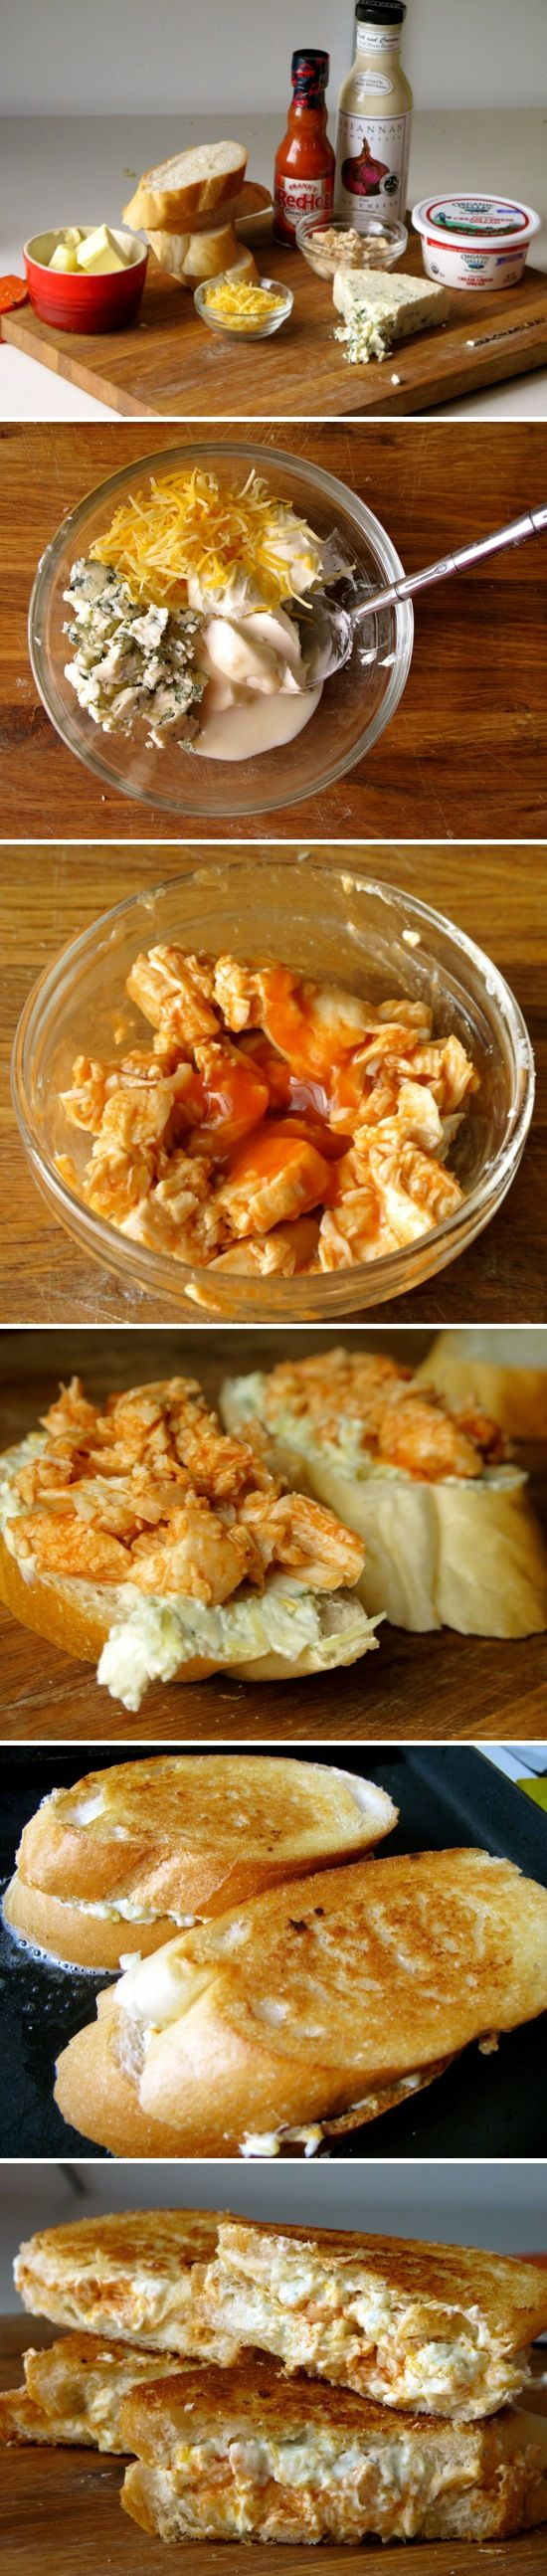 Grilled Blue Cheese and Buffalo Chicken